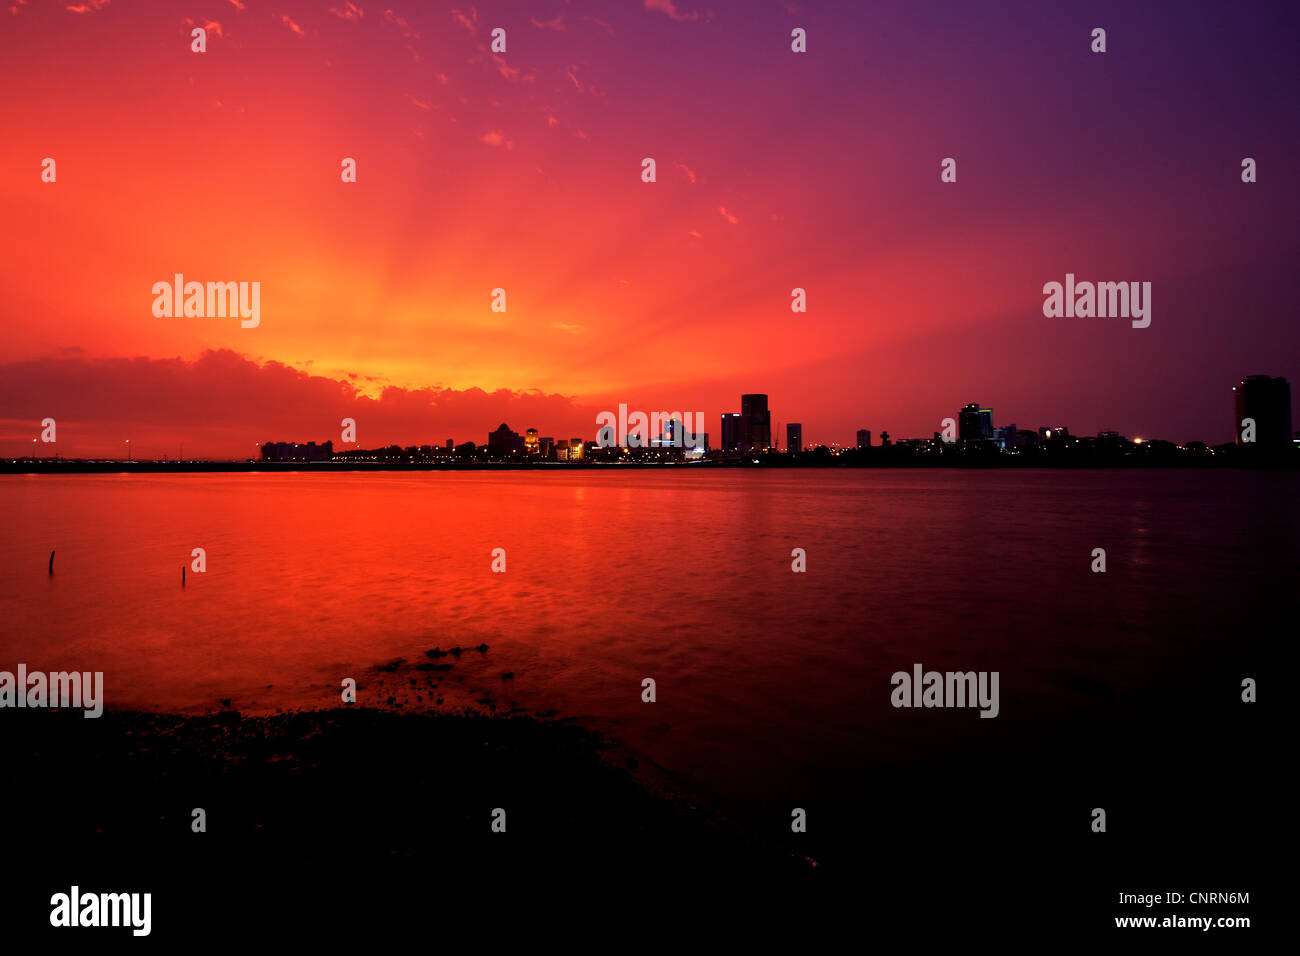 Sunset at Singapore Woodlands Waterfront - Stock Image